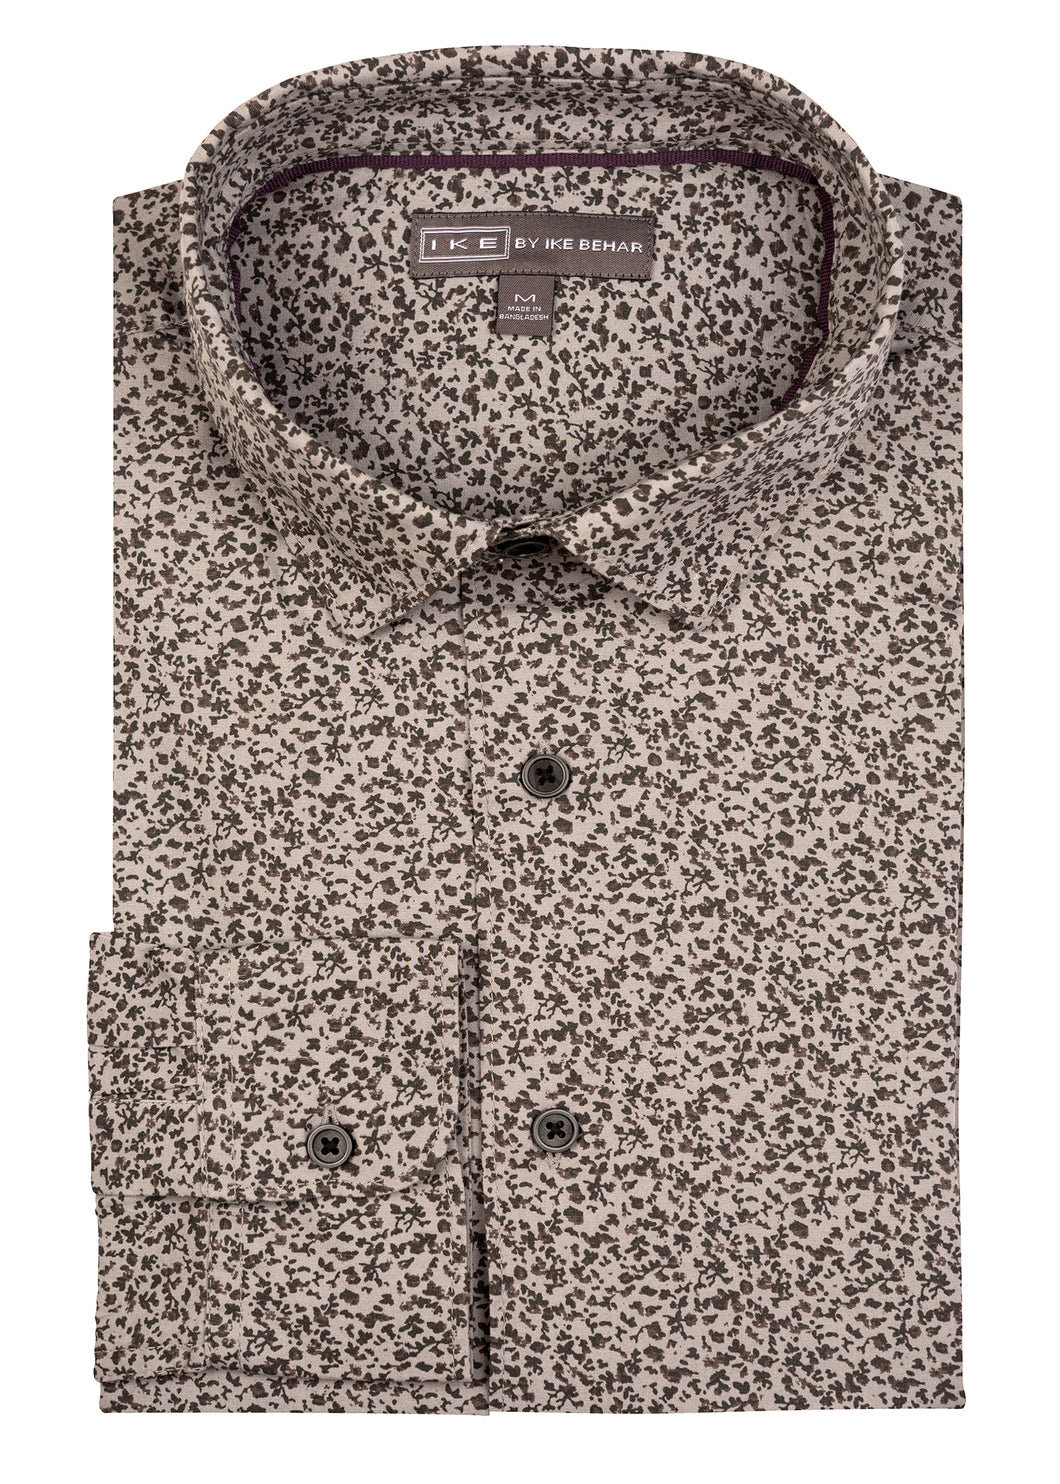 Grey Floral Print Ike by Ike Behar Sport Shirt